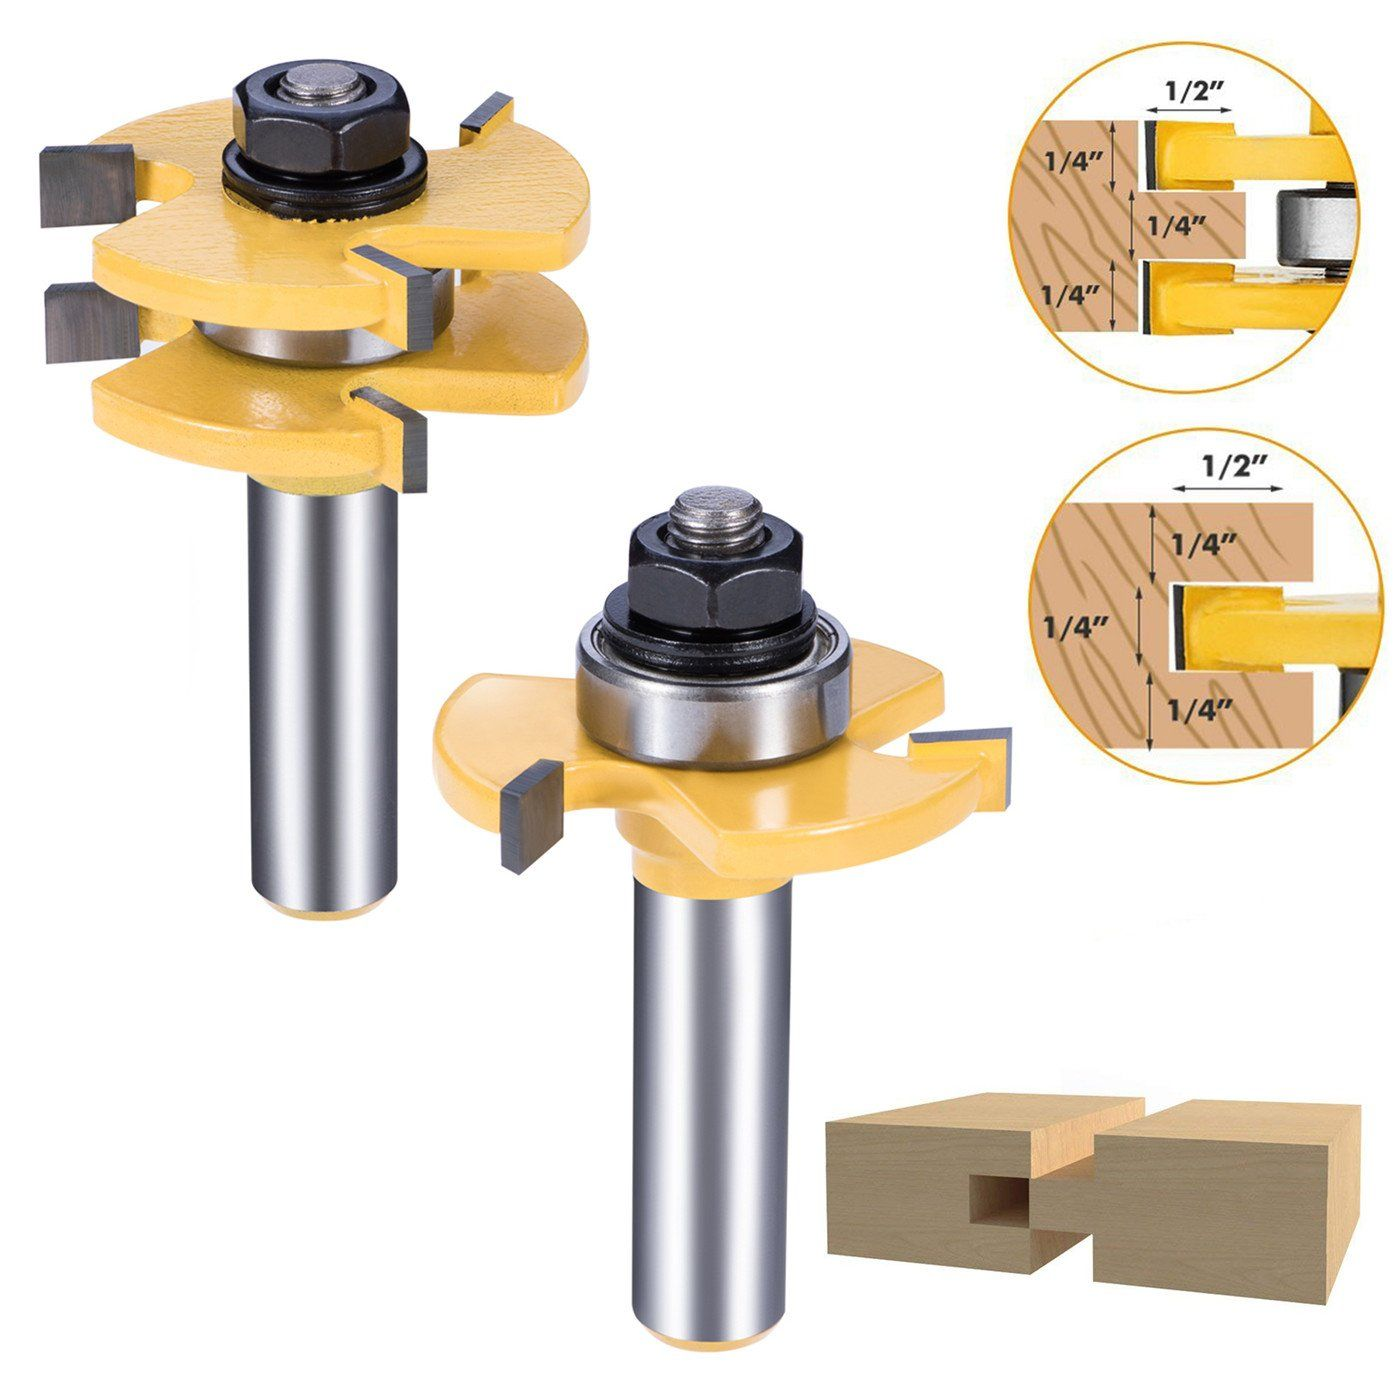 Asel Tongue And Groove Set Router Bit Set Wood Door Flooring 3 Teeth Adjustable 1 2 Inch Shank T Shape Wood Millin Woodworking Tools Router Bit Set Woodworking